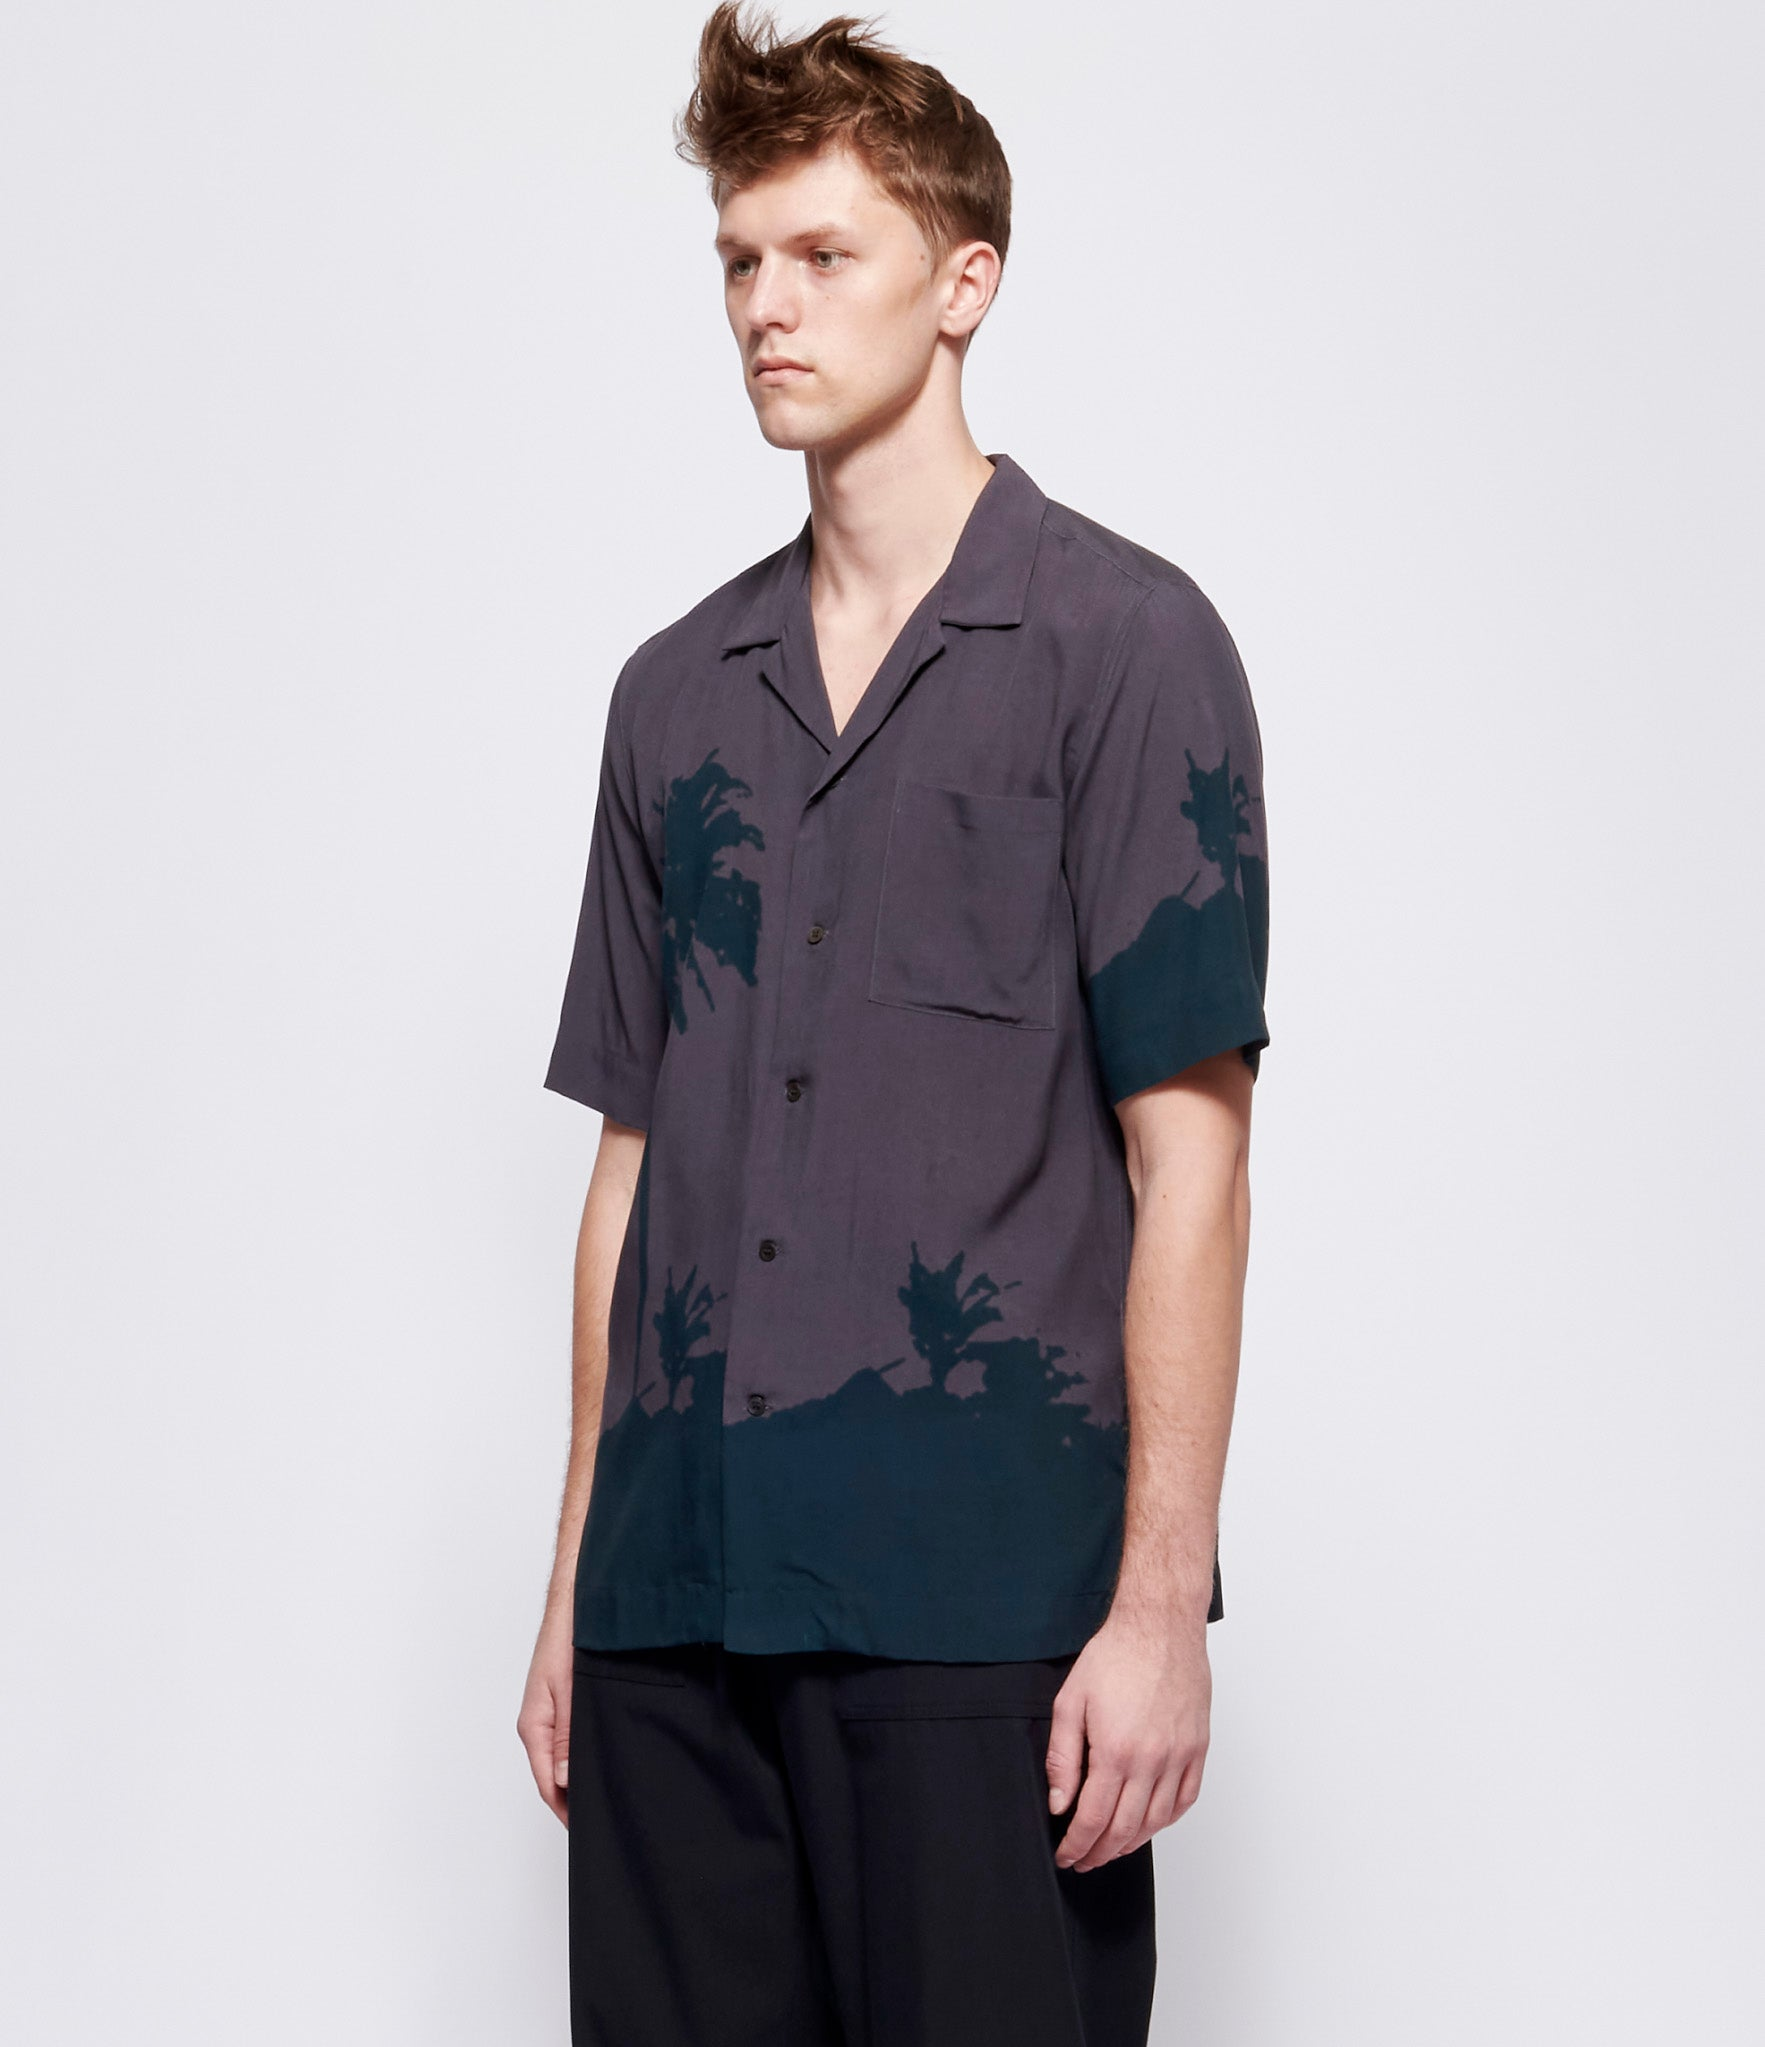 Dries Van Noten Carltone Shirt